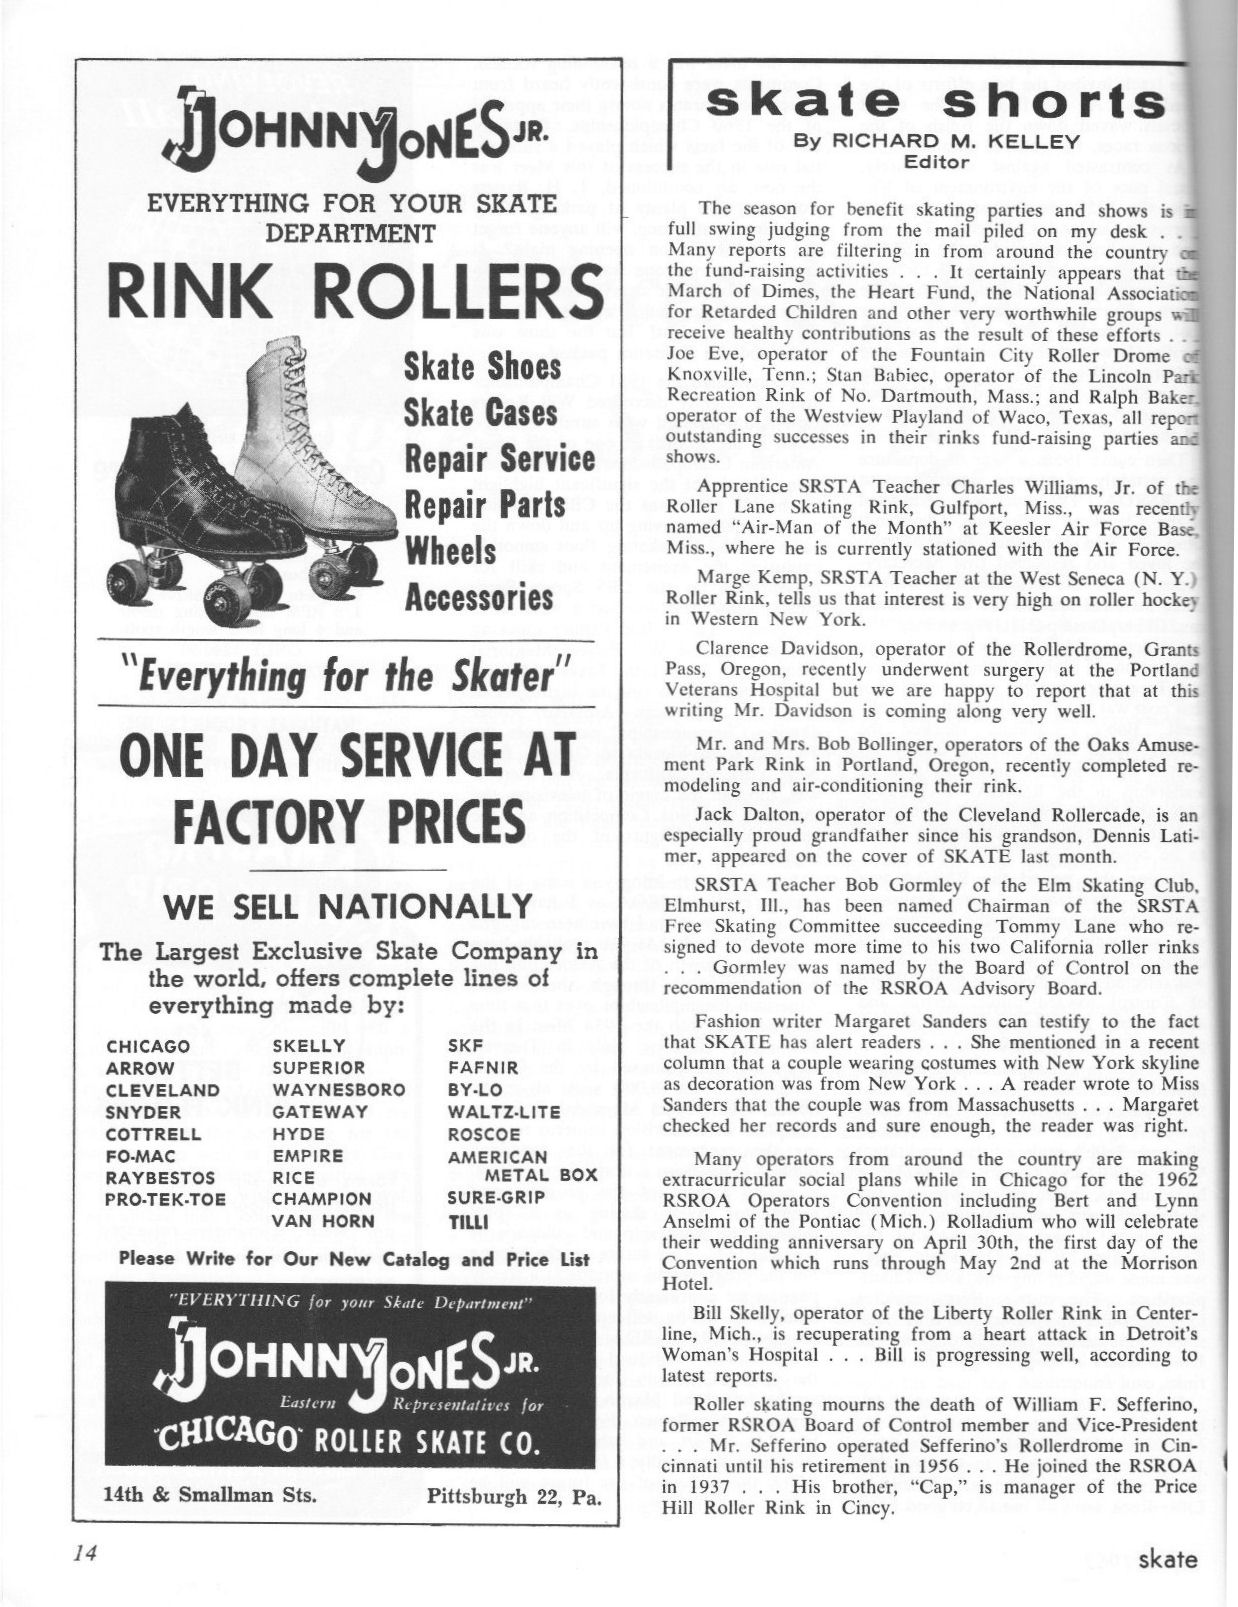 Roller skating rink peoria il - Skate Shorts Page S 14